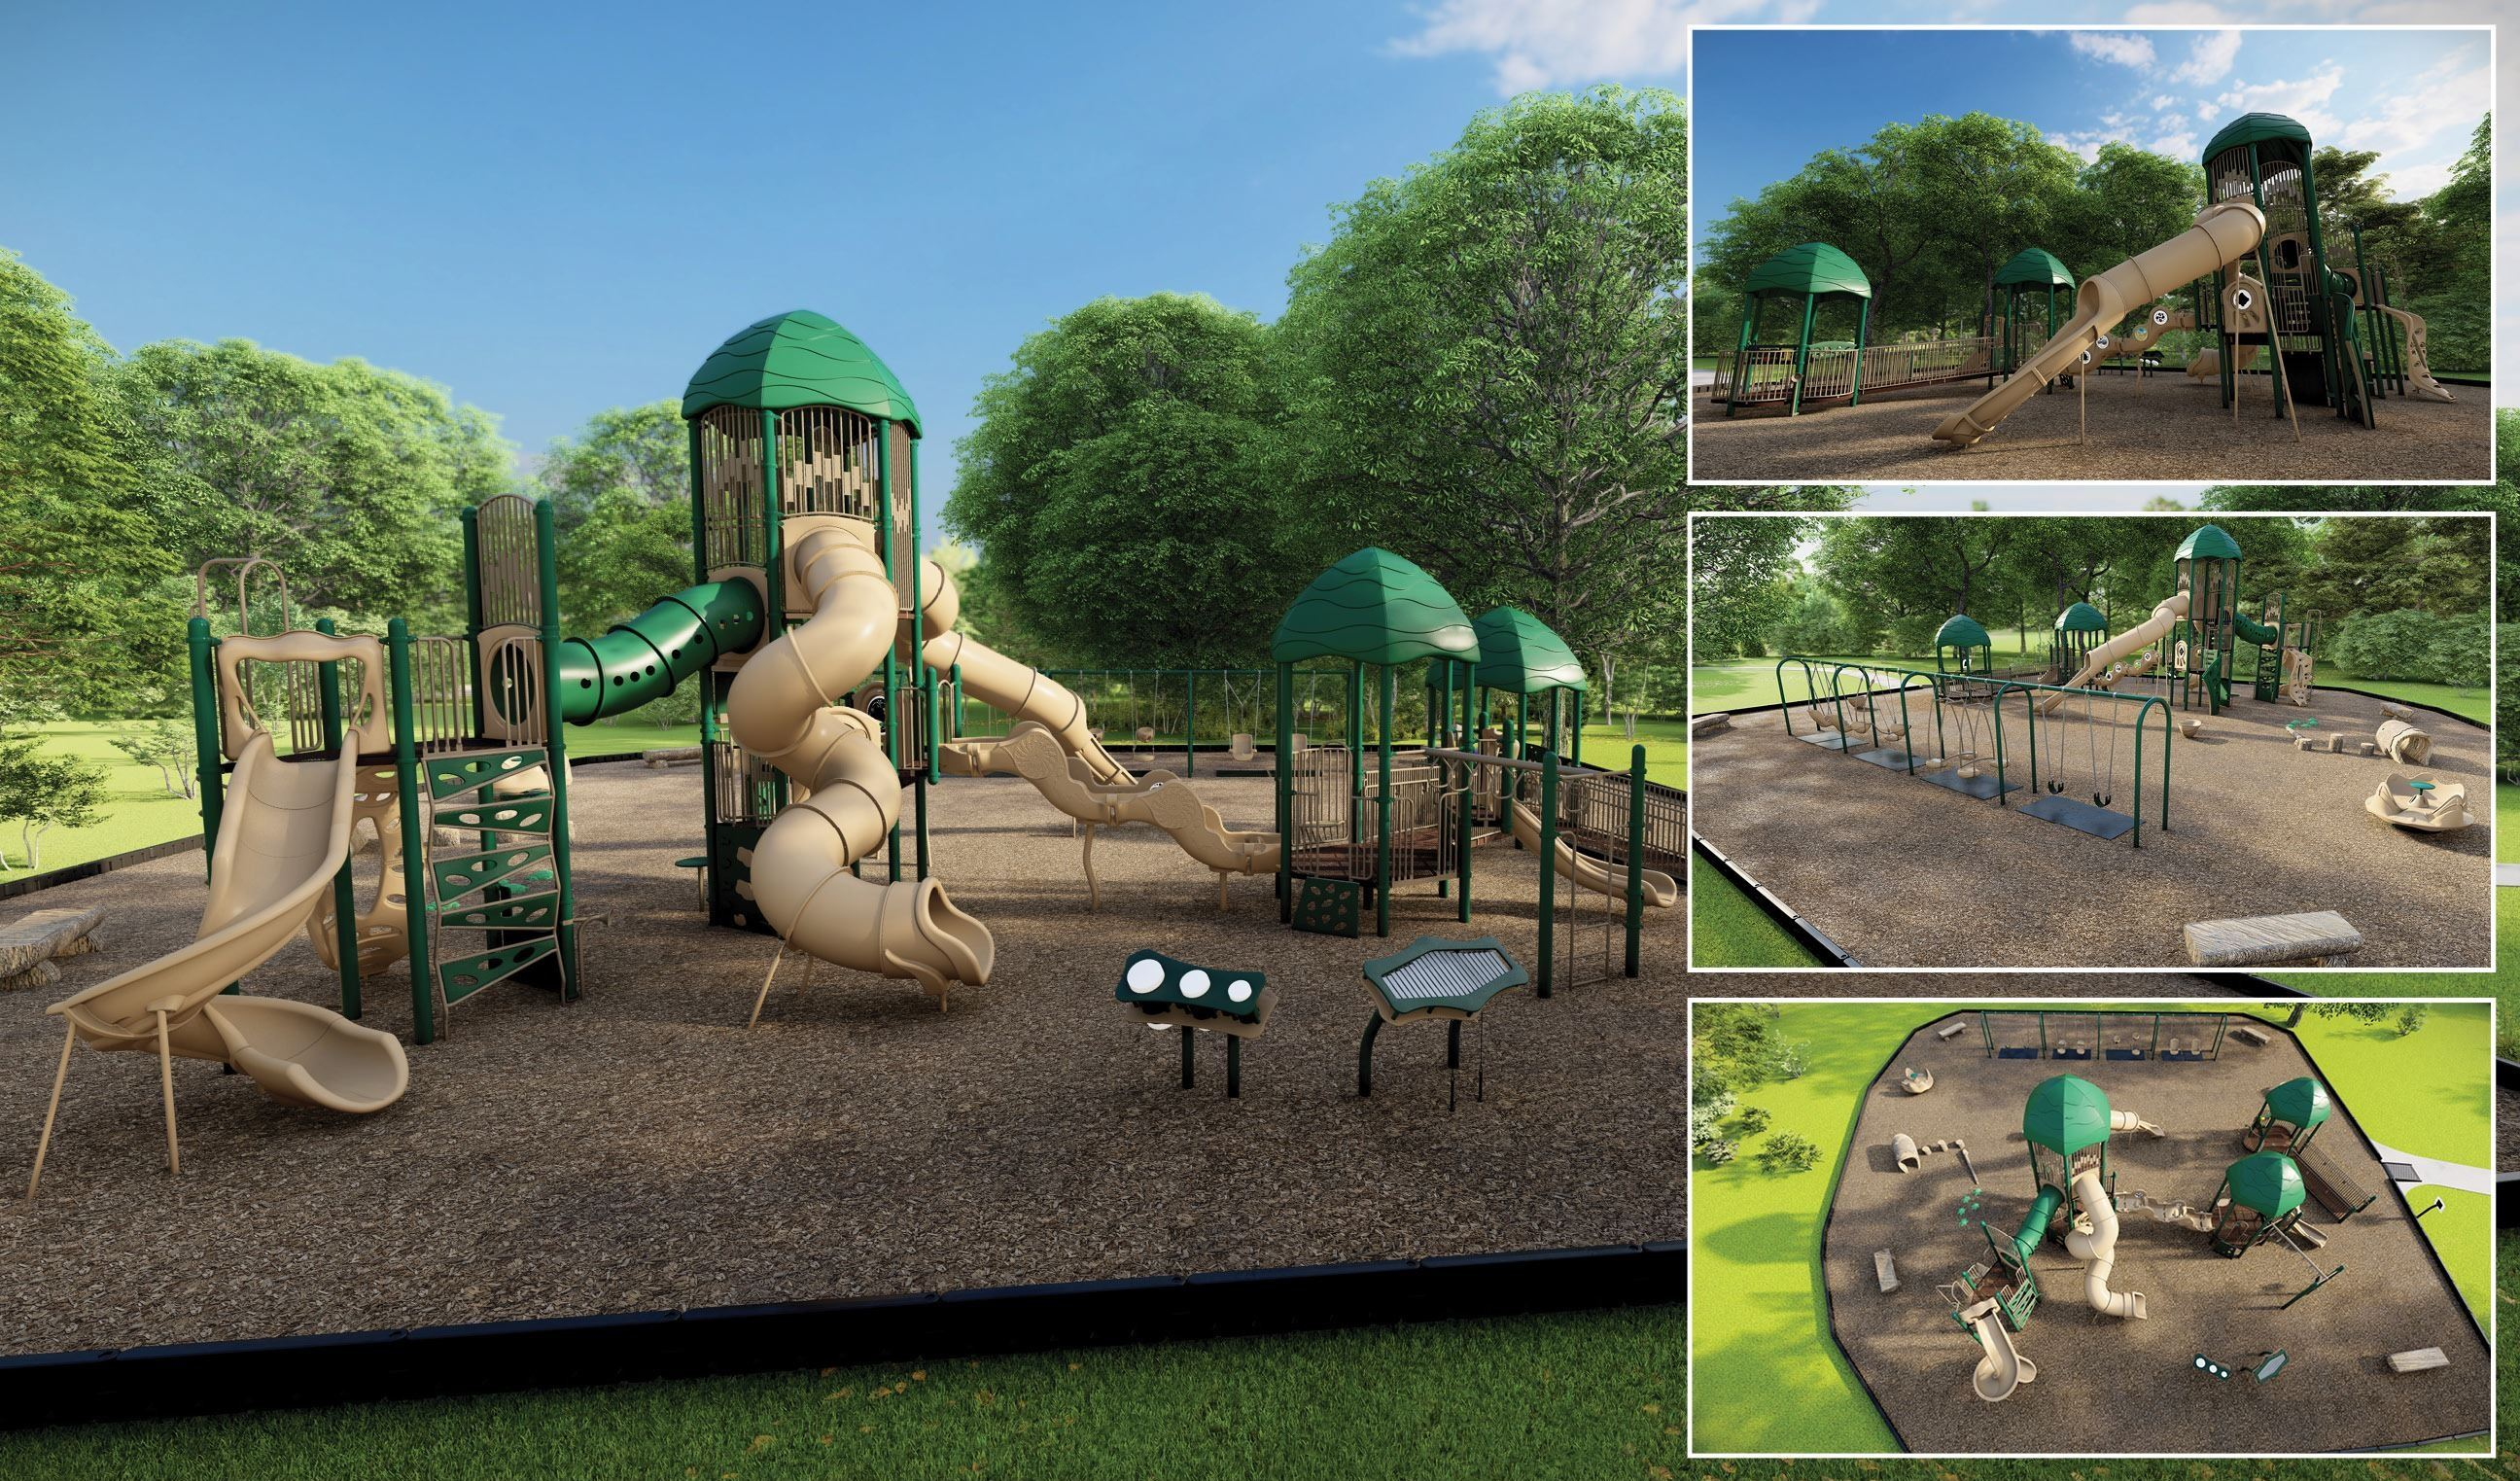 A conceptual drawing of a possible replacement for the Rotary play structure